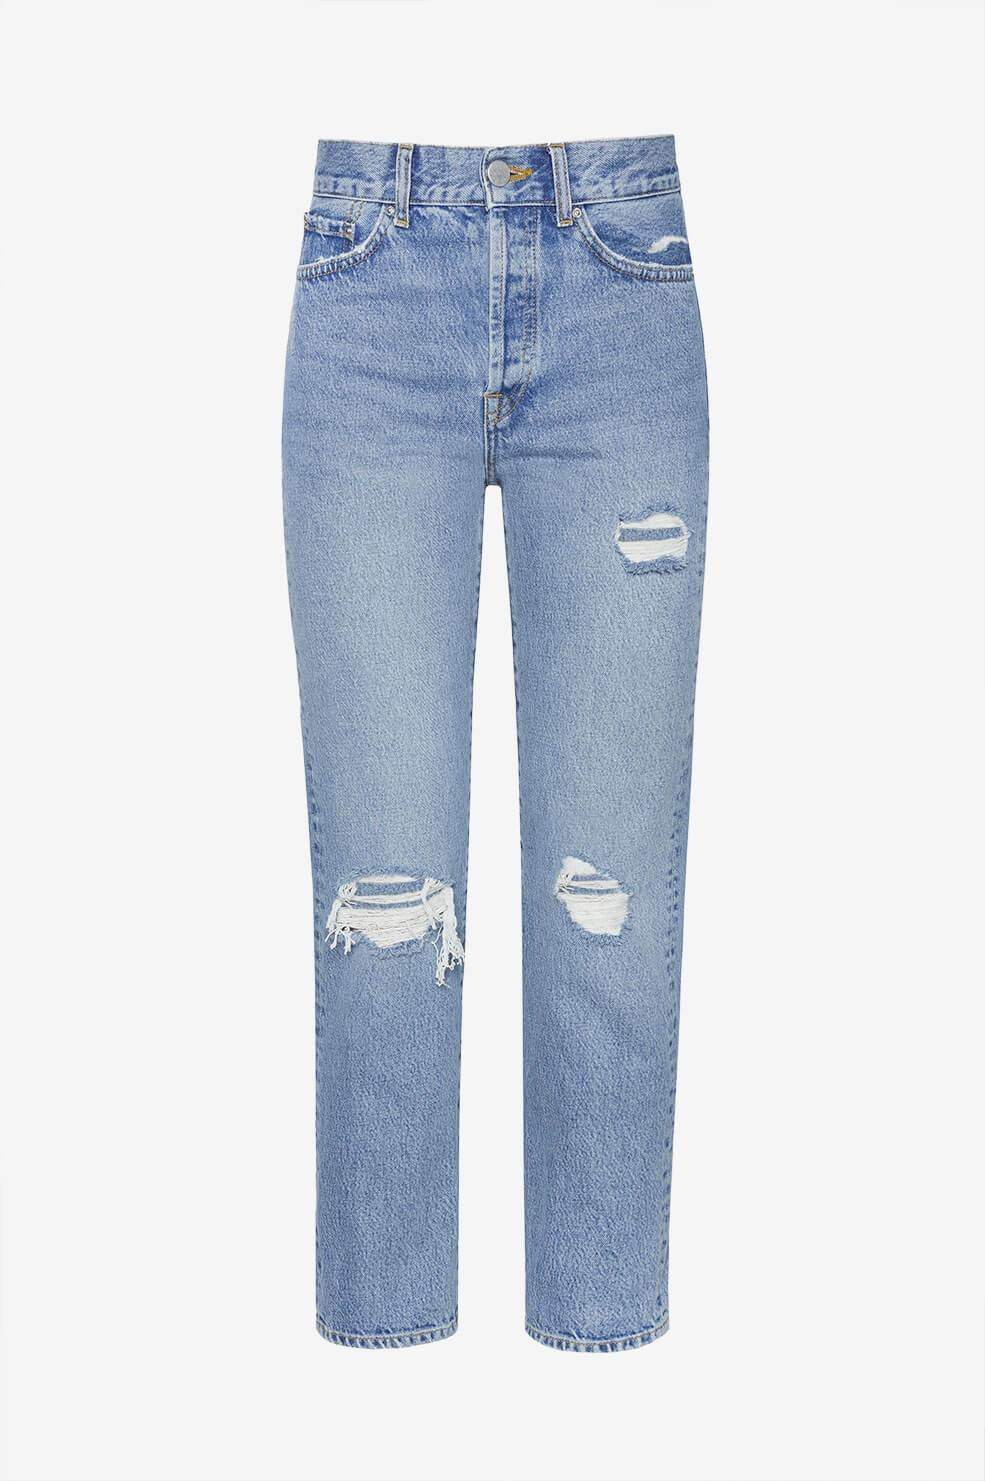 ANINE BING JEANS FROM ANINE BING